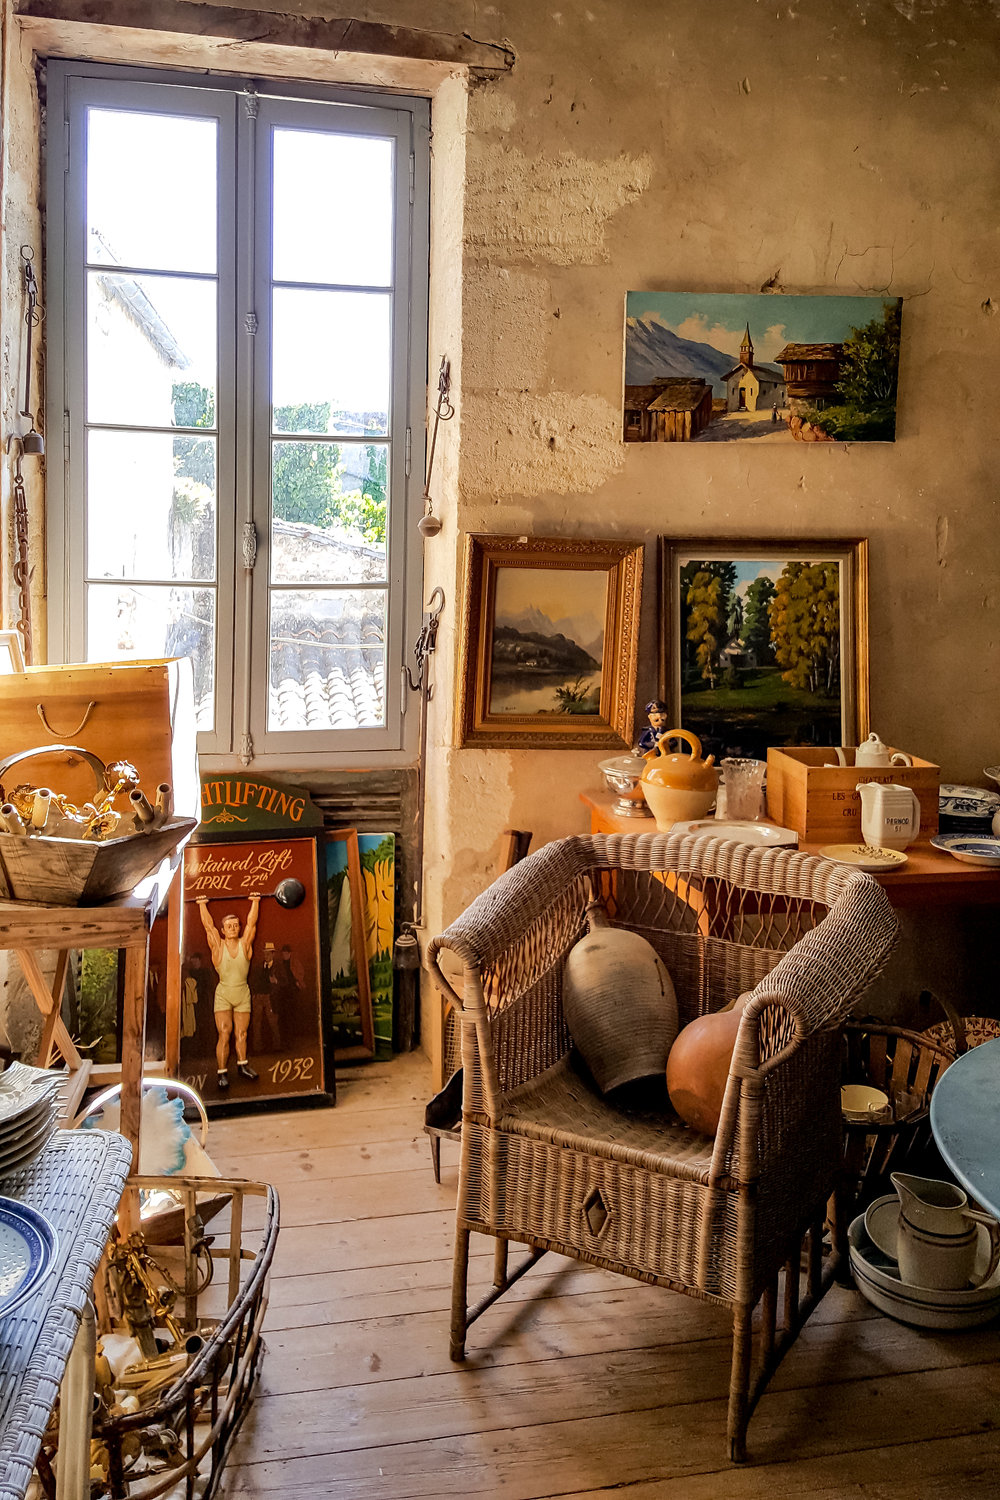 Brocante store in Saint-Christoly, Medoc